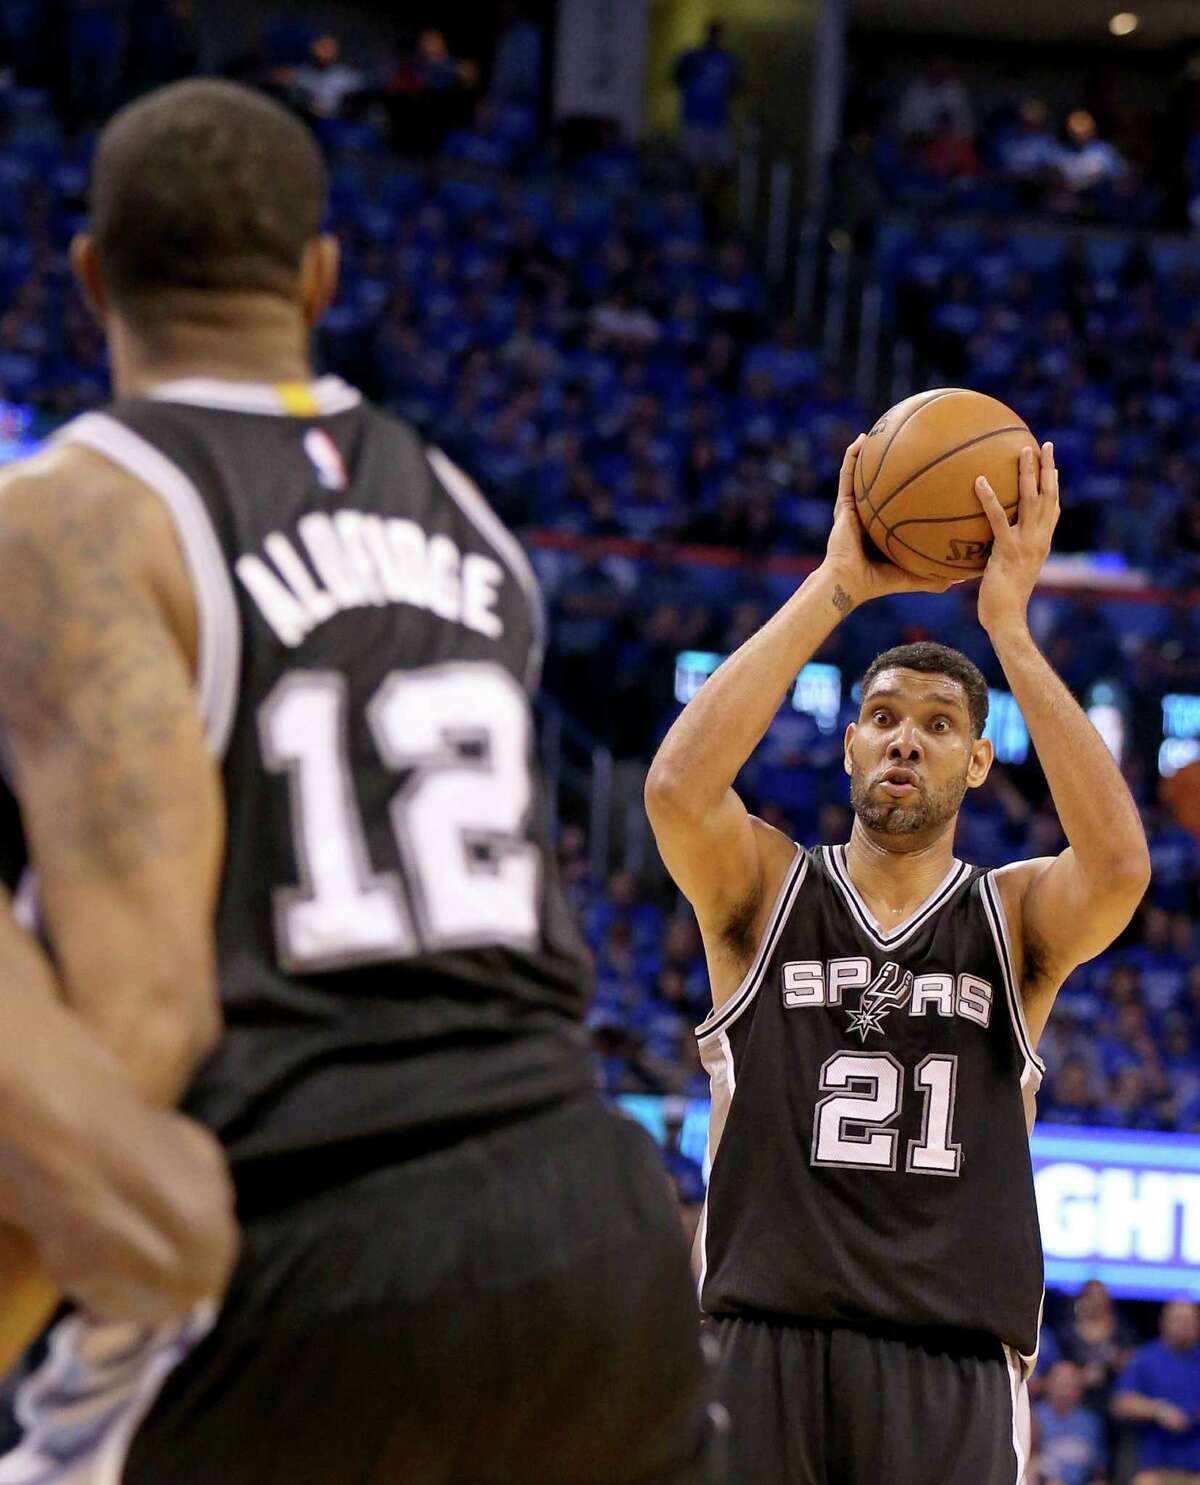 Spurs' Tim Duncan looks to pass to LaMarcus Aldridge during first half action of Game 6 in the Western Conference semifinals against the Oklahoma City Thunder on May 12, 2016 at Chesapeake Energy Arena.